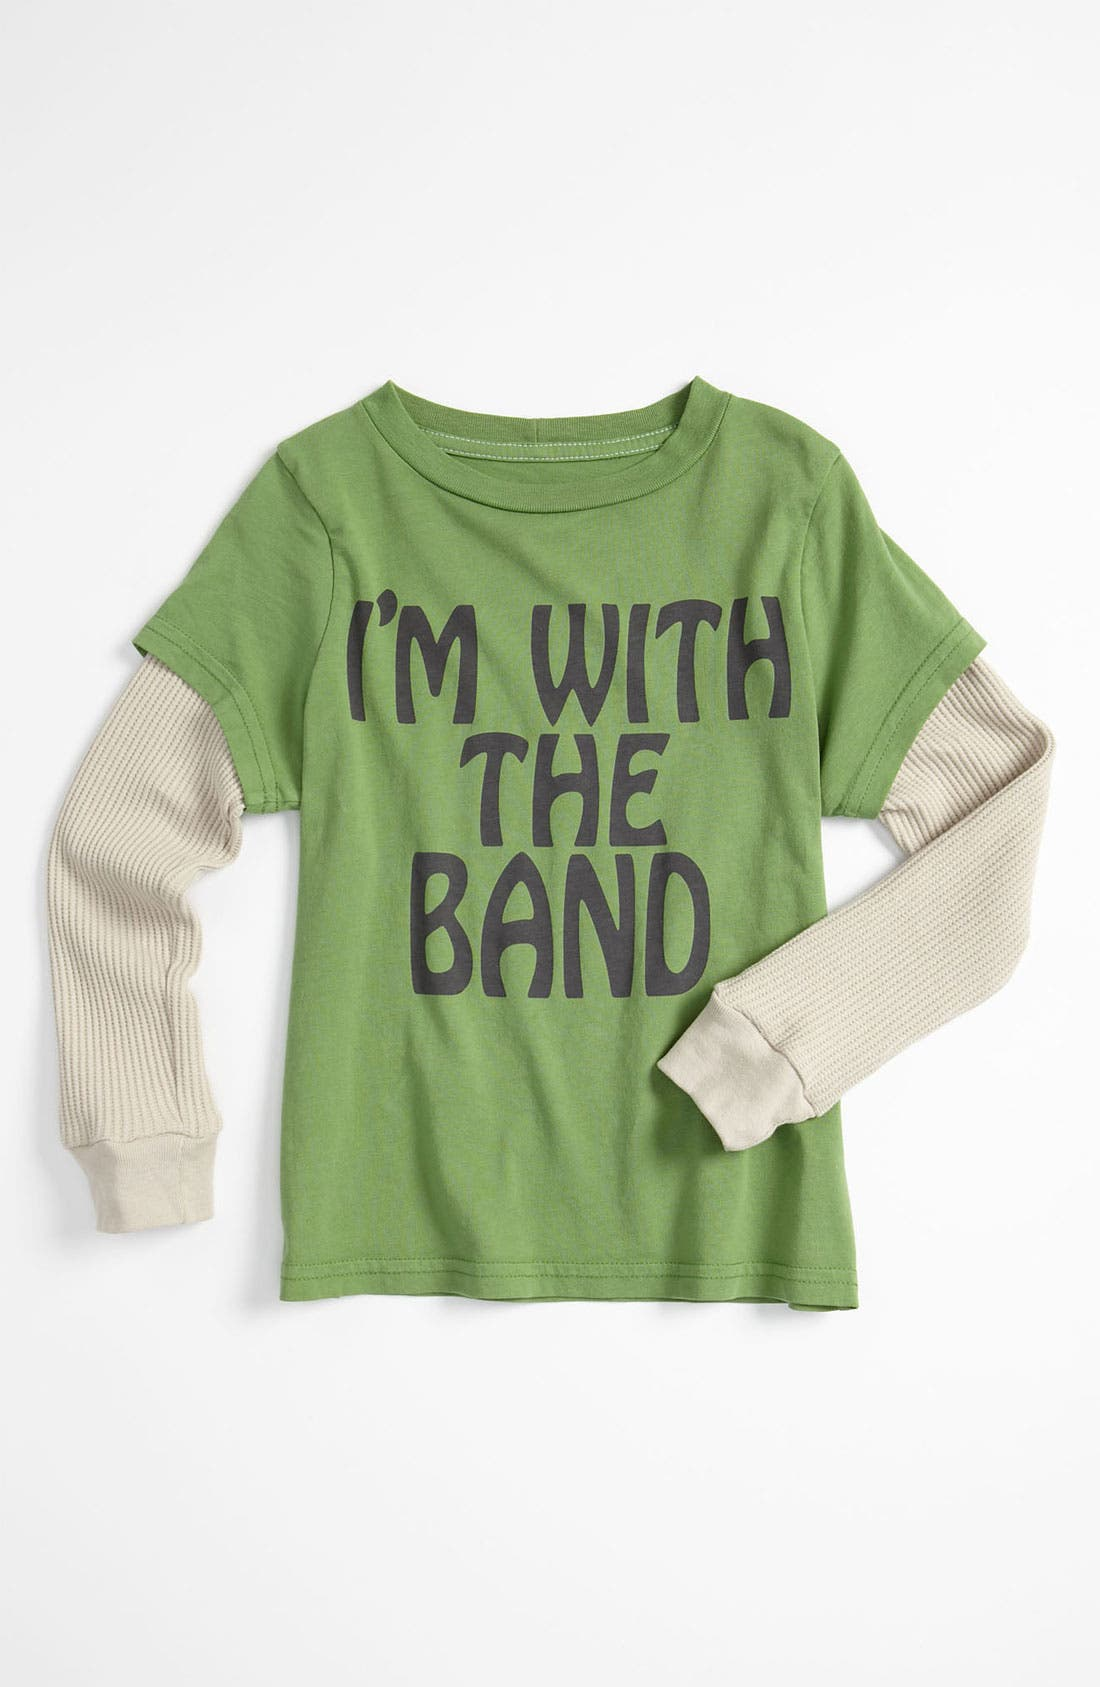 Alternate Image 1 Selected - Peek 'I'm With The Band' T-Shirt (Toddler, Little Boys & Big Boys)